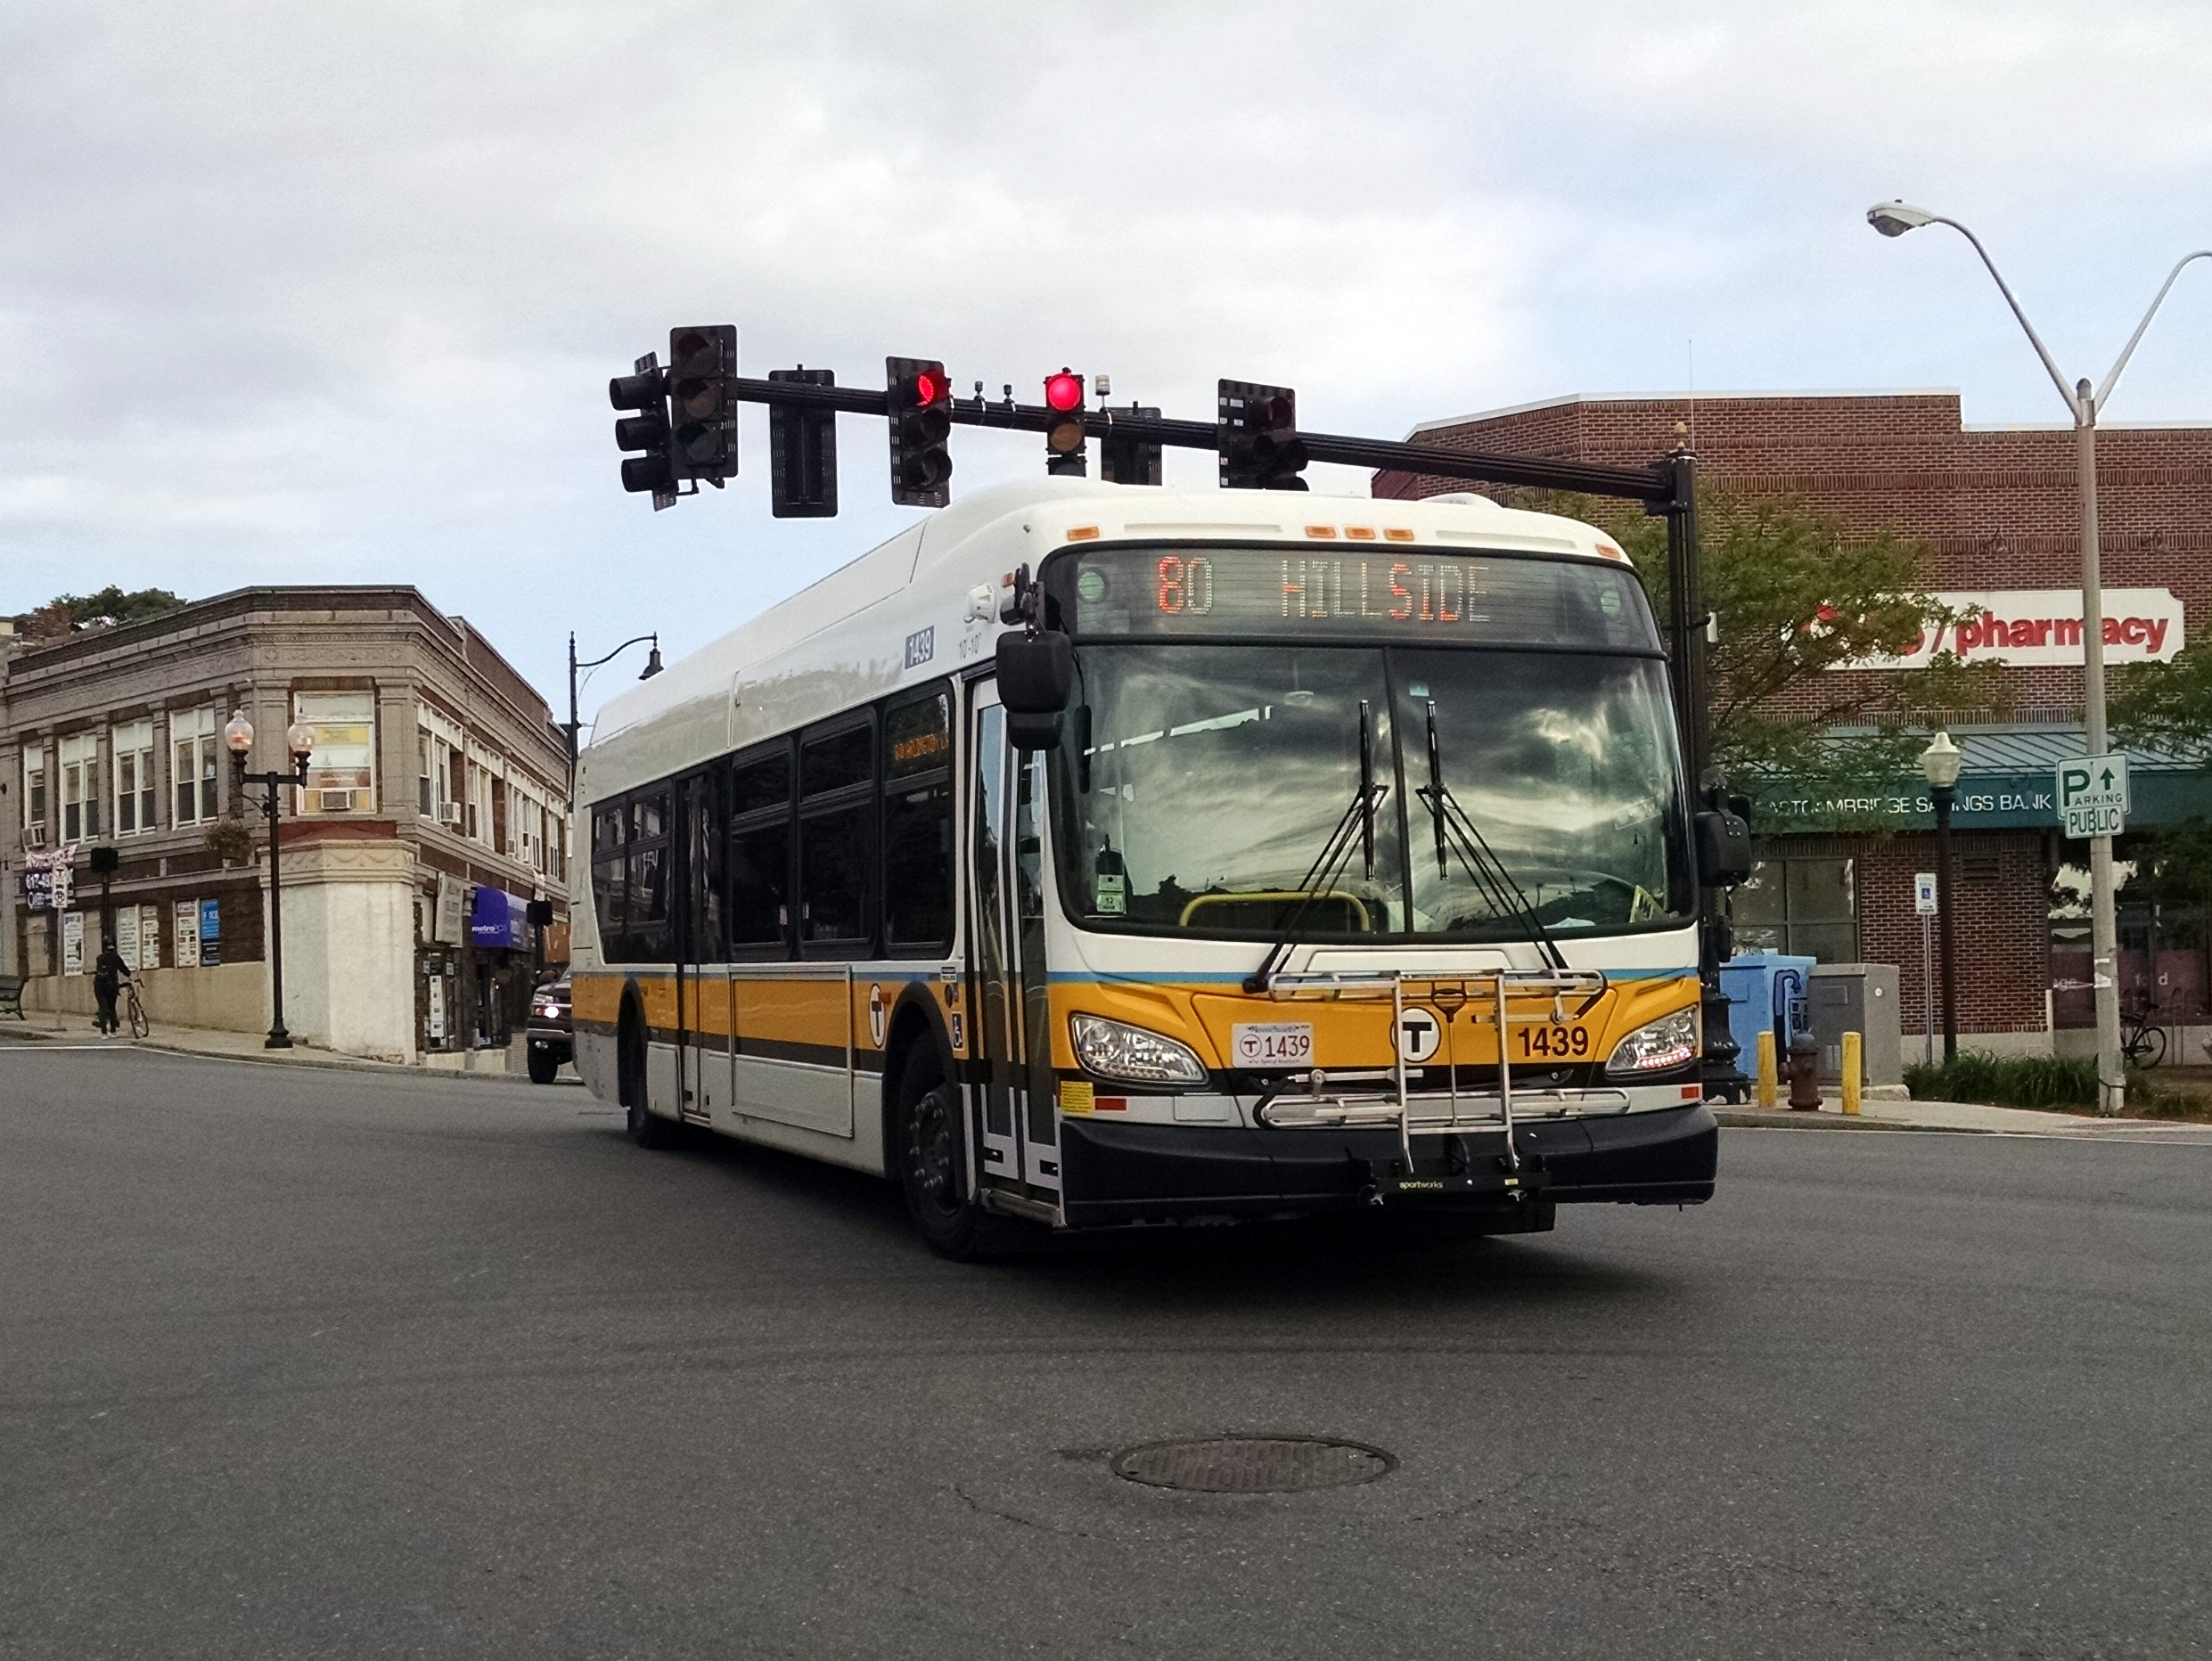 file:mbta route 80 bus at magoun square, june 2015 - wikimedia